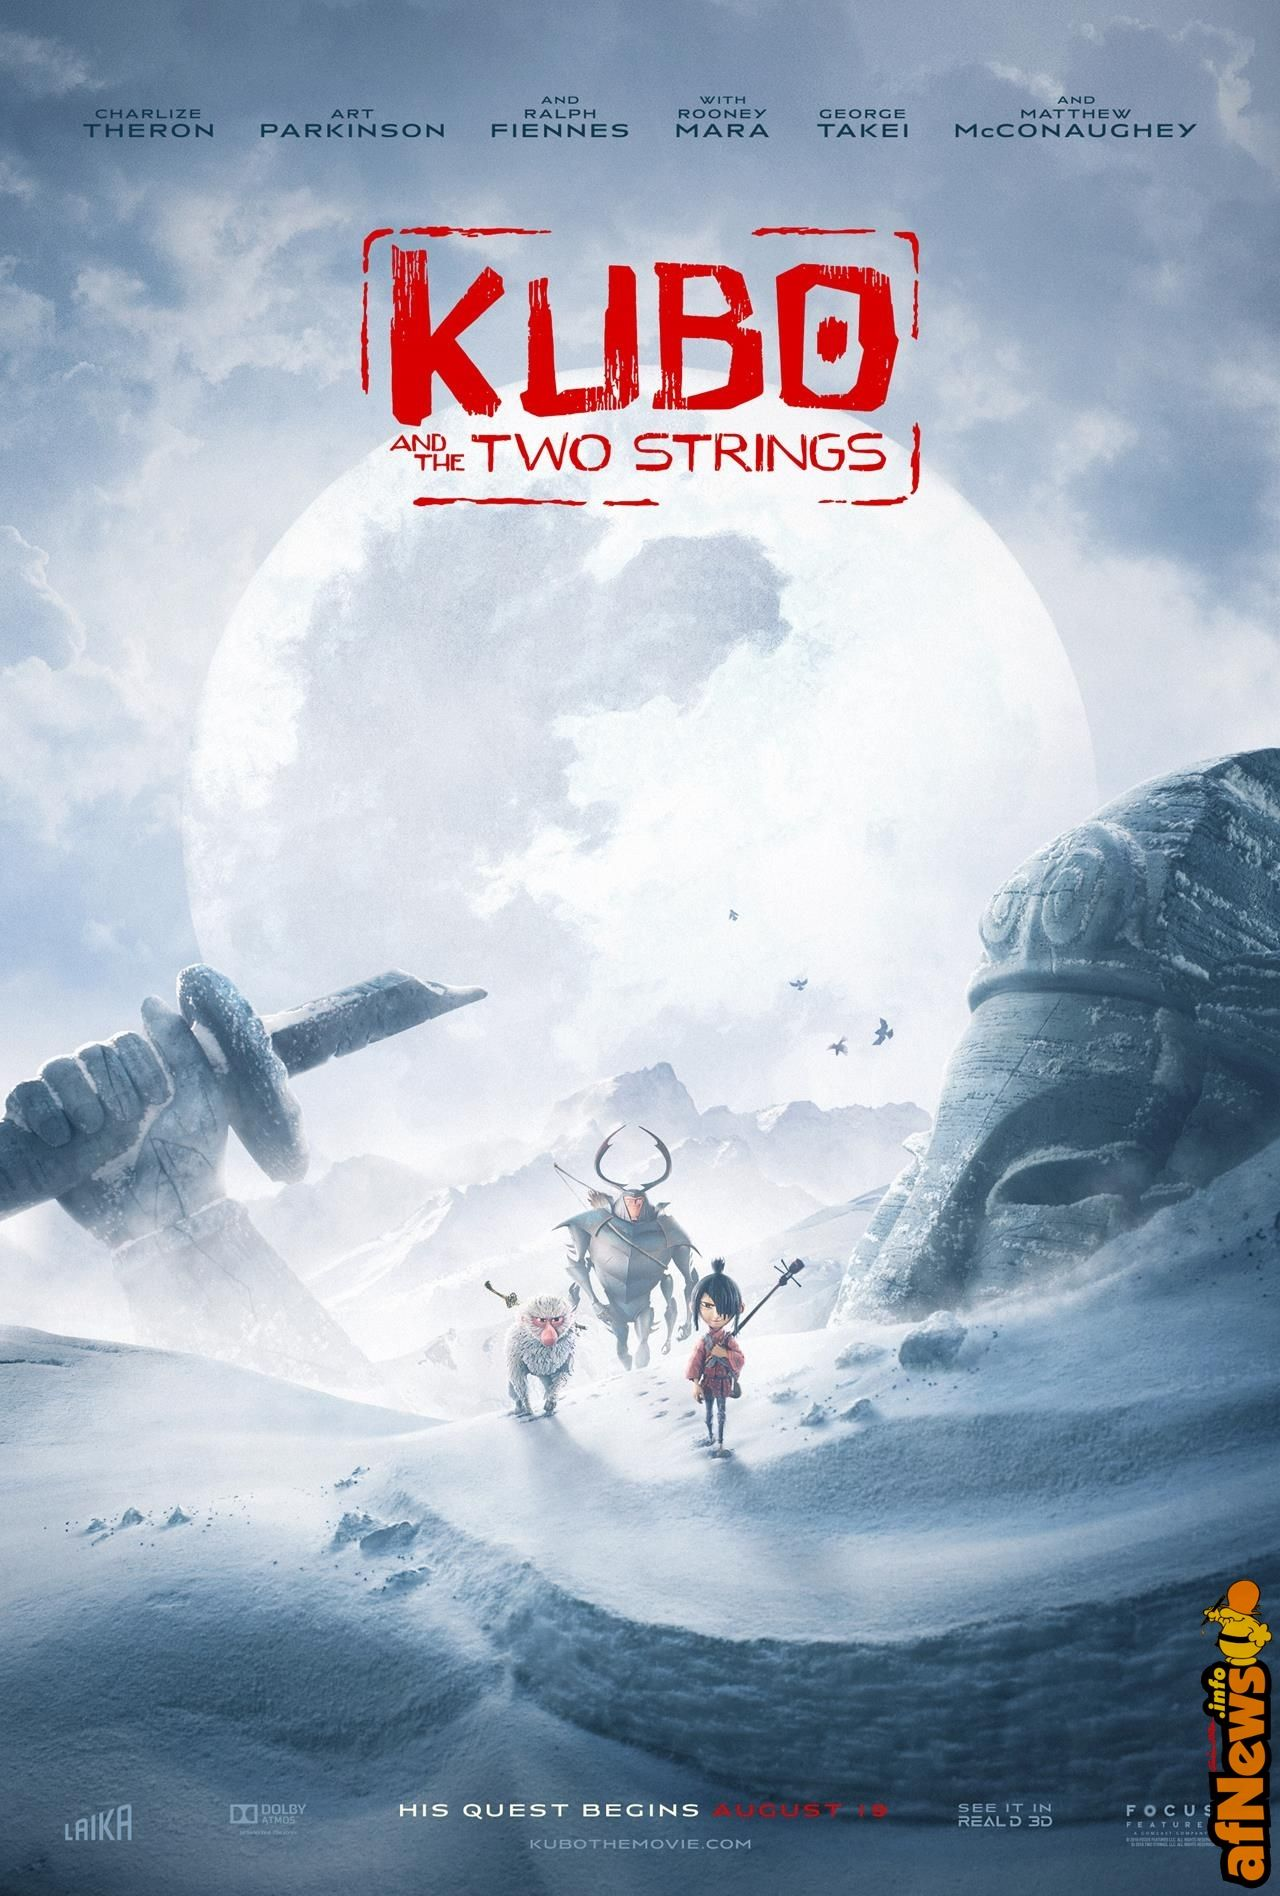 """Kubo and the two strings"": nuovo trailer e artworks spettacolari - http://www.afnews.info/wordpress/2016/04/29/kubo-and-the-two-strings-nuovo-trailer-e-artworks-spettacolari/"